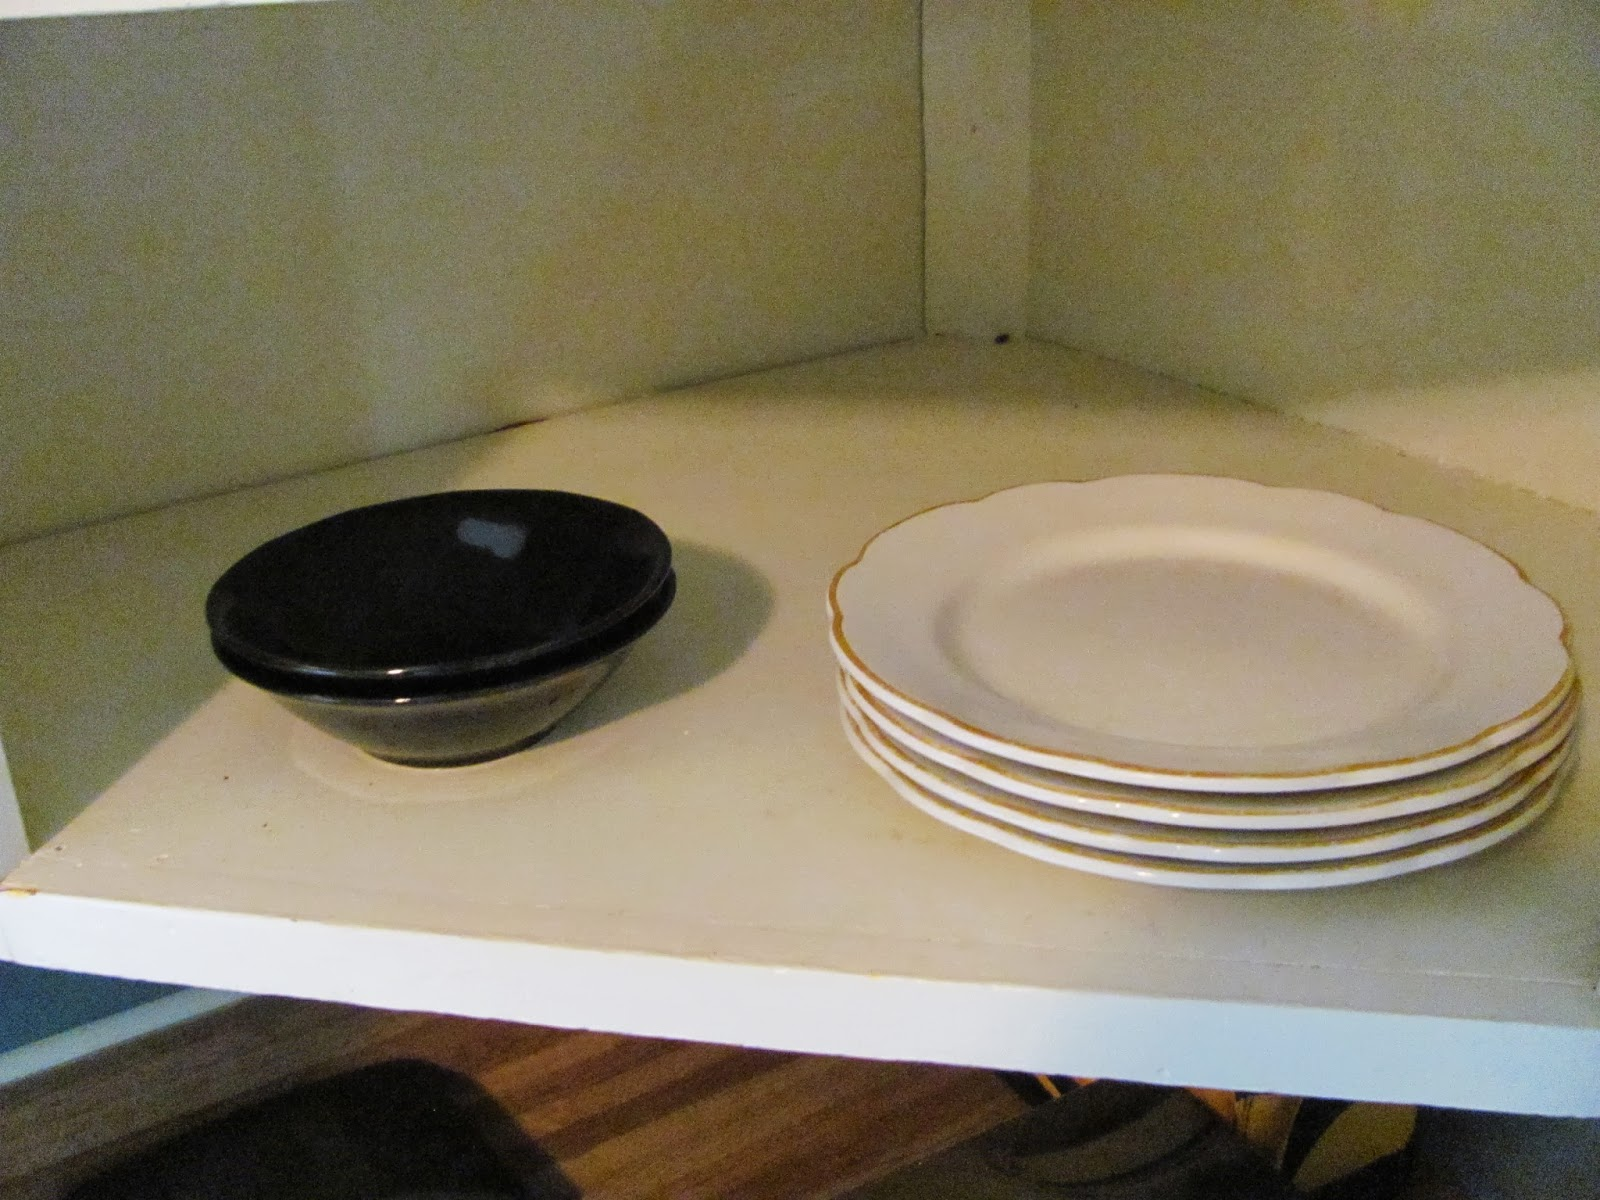 Two bowls and four plates purchased to tide us over while our real dishes are packed